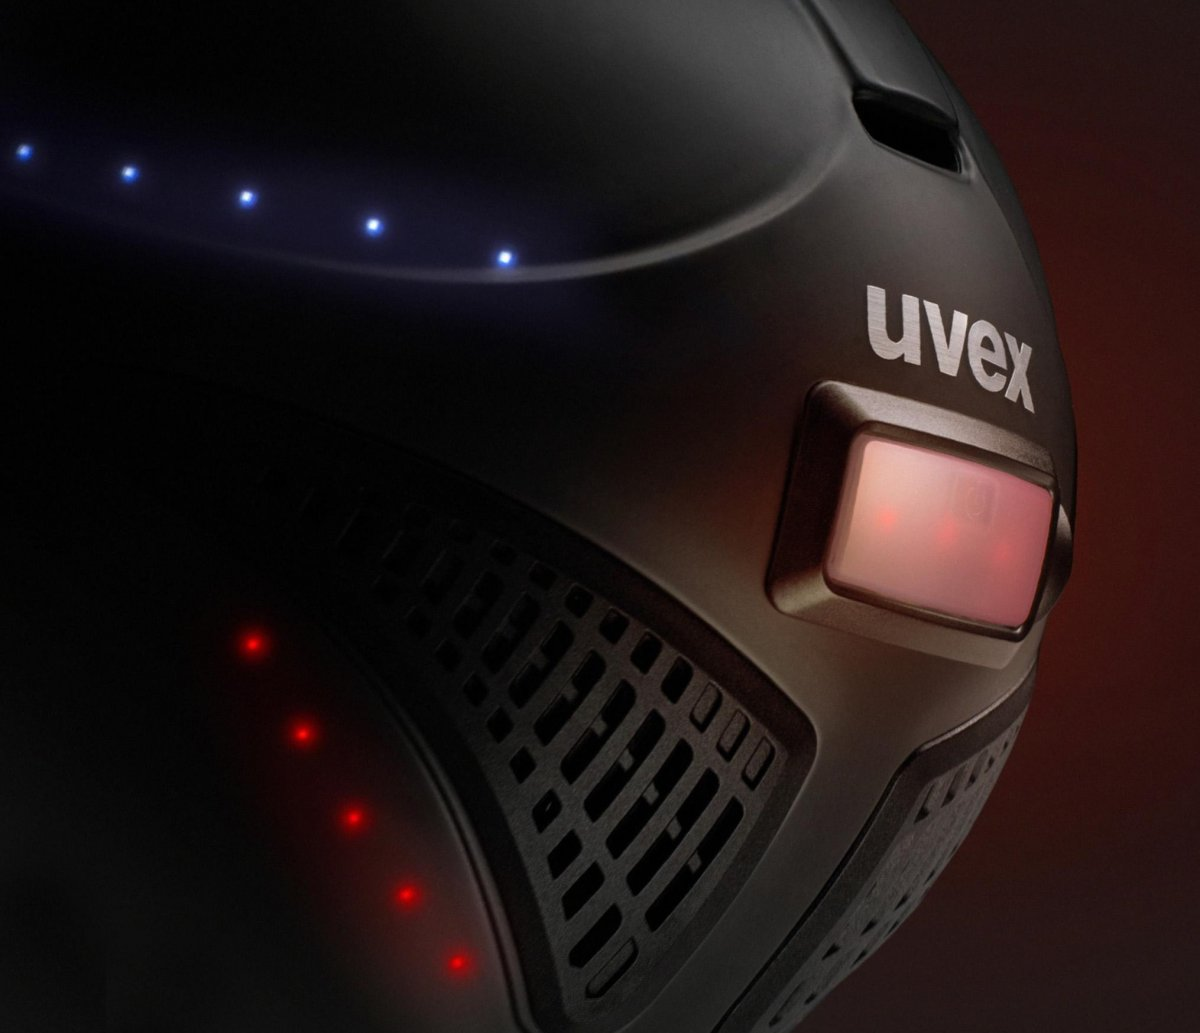 uvex_equestrian_exxential_ii_led_image21